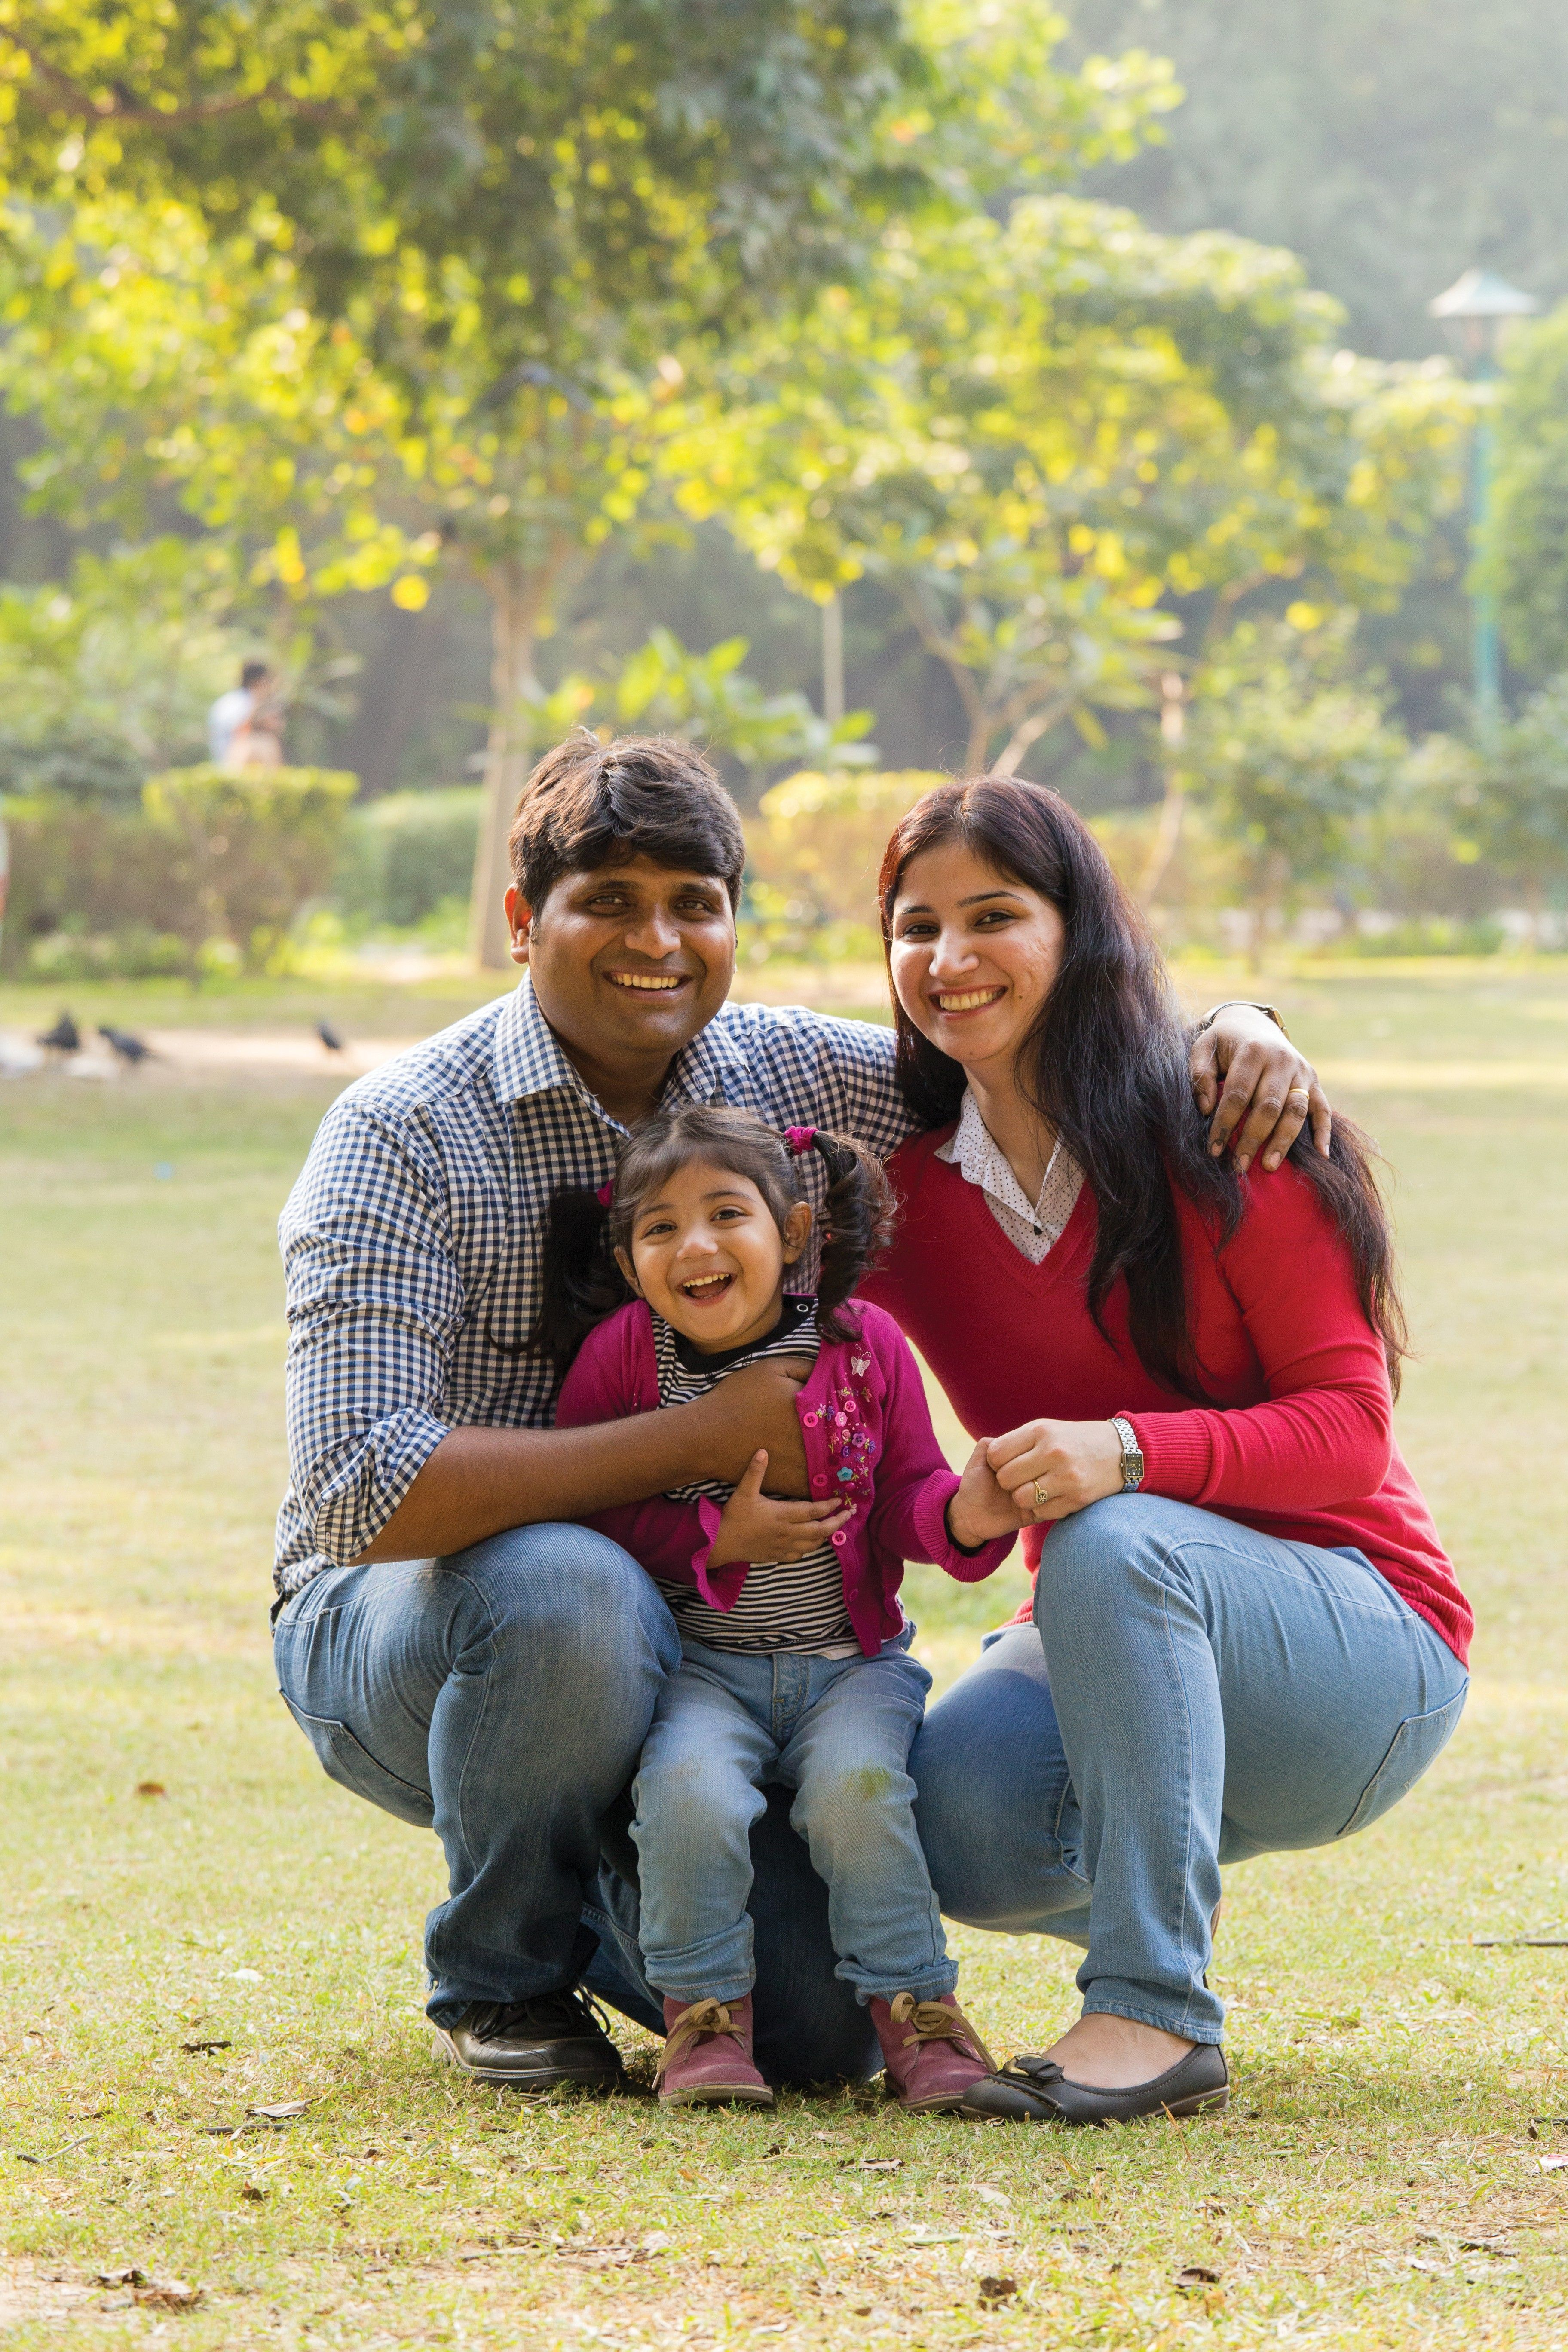 A young family from India at the park together.